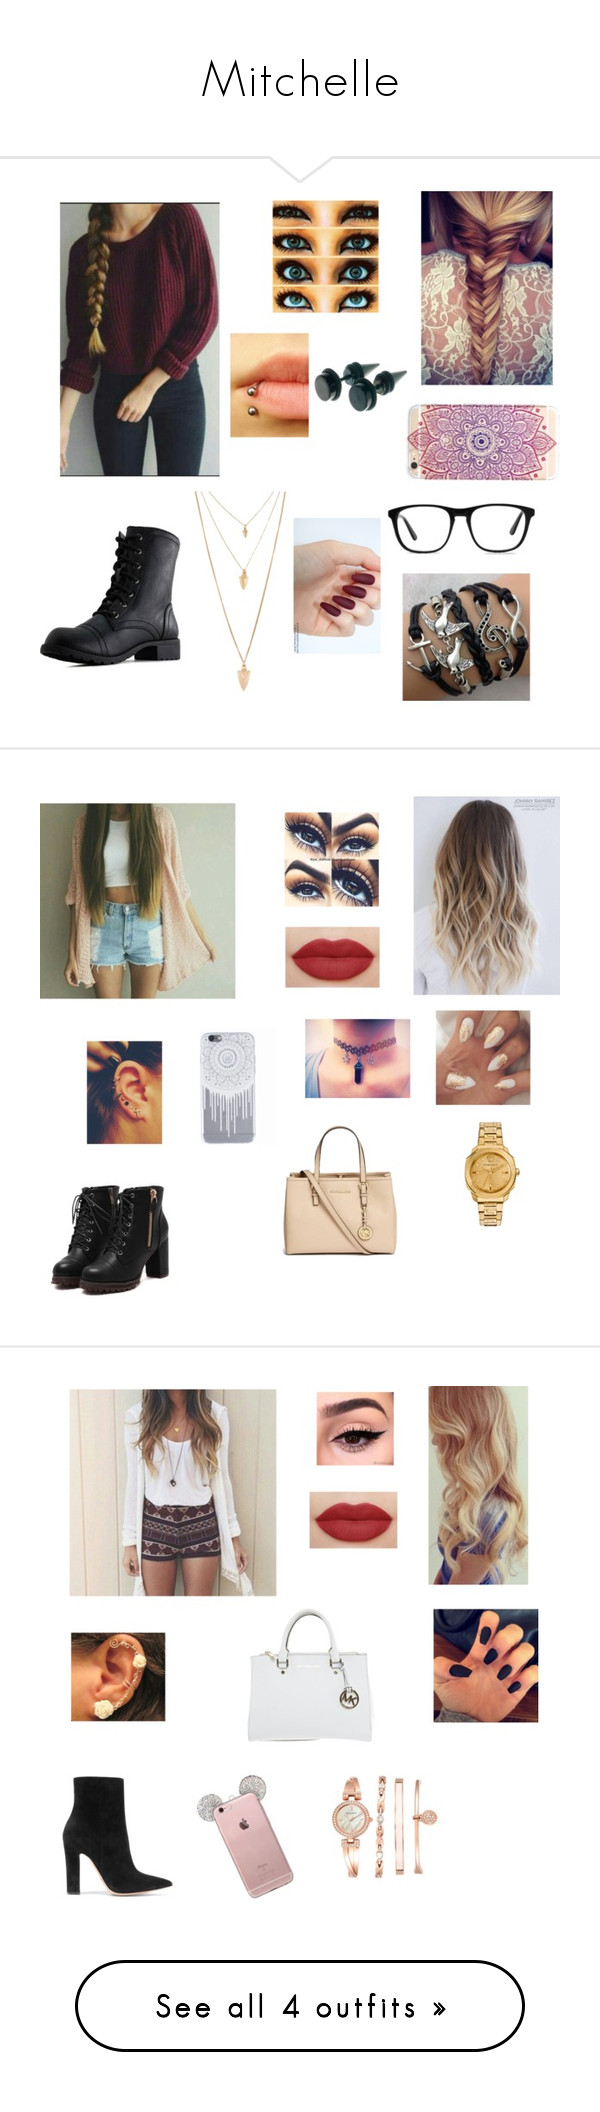 """""""Mitchelle"""" by ilovejustinbieber189 ❤ liked on Polyvore featuring Ace, Forever 21, Michael Kors, Anne Klein, Gianvito Rossi, beauty and Forever New"""